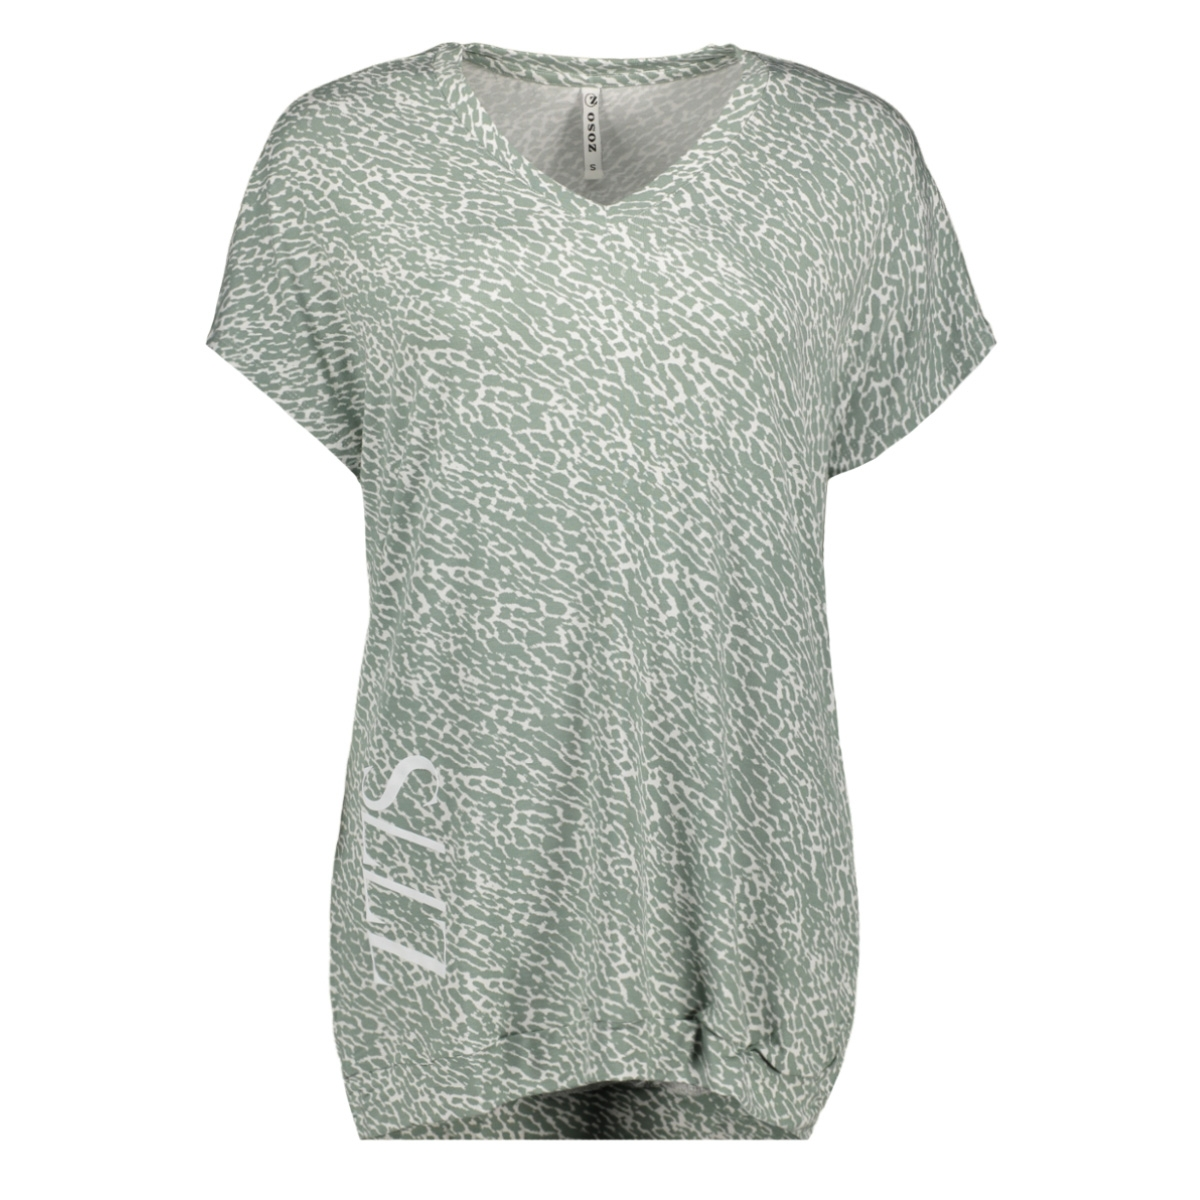 alliston printed t shirt 192 zoso t-shirt sage/white